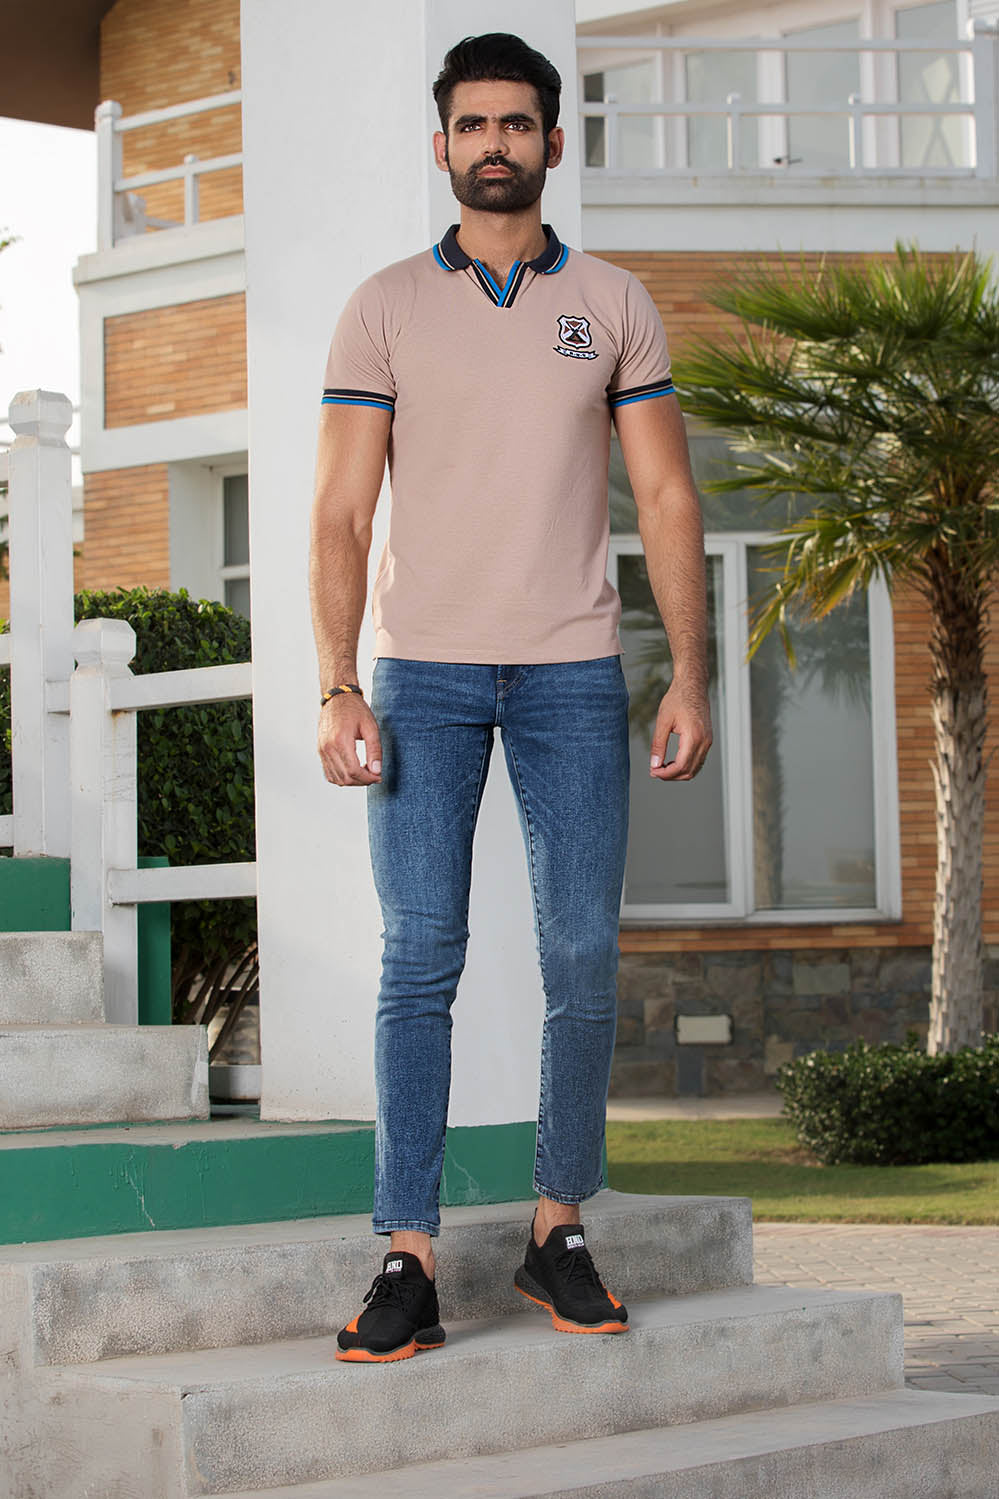 Premium Embroided Polo with Johny Collar - HOPE NOT OUT